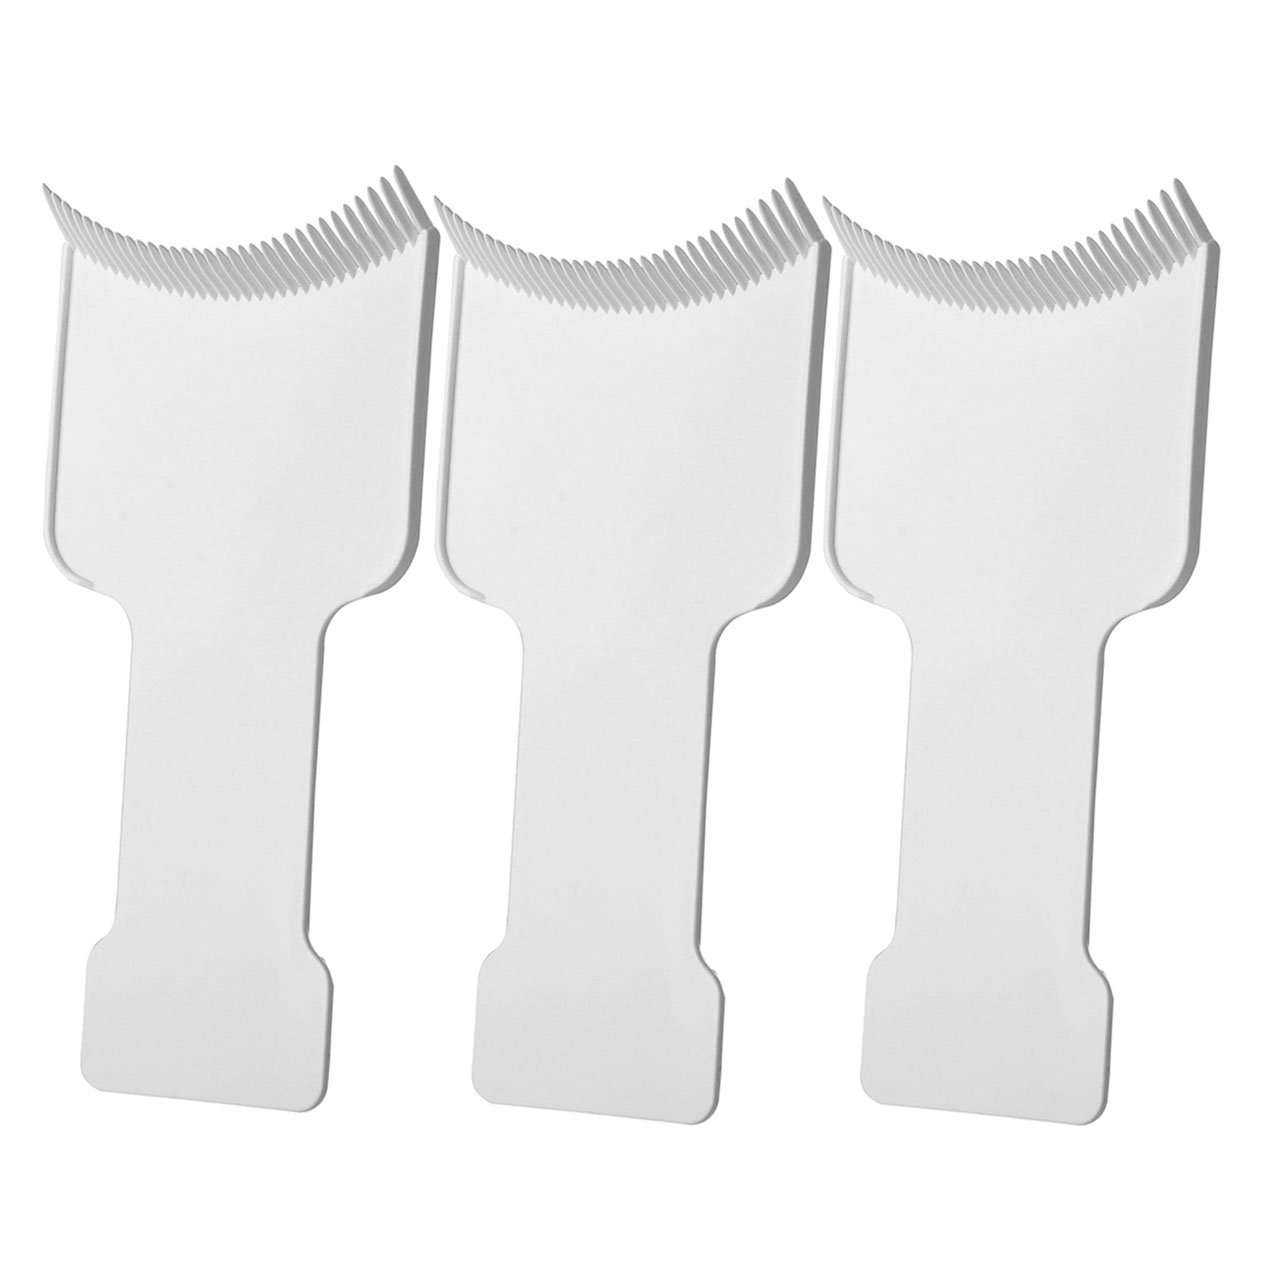 CCbeauty 3Pcs Barber Flat Top Paddle Board Comb Hair Highlighting Sectioning Comb Set for Hair Dye Colors, Balayage & More (White)